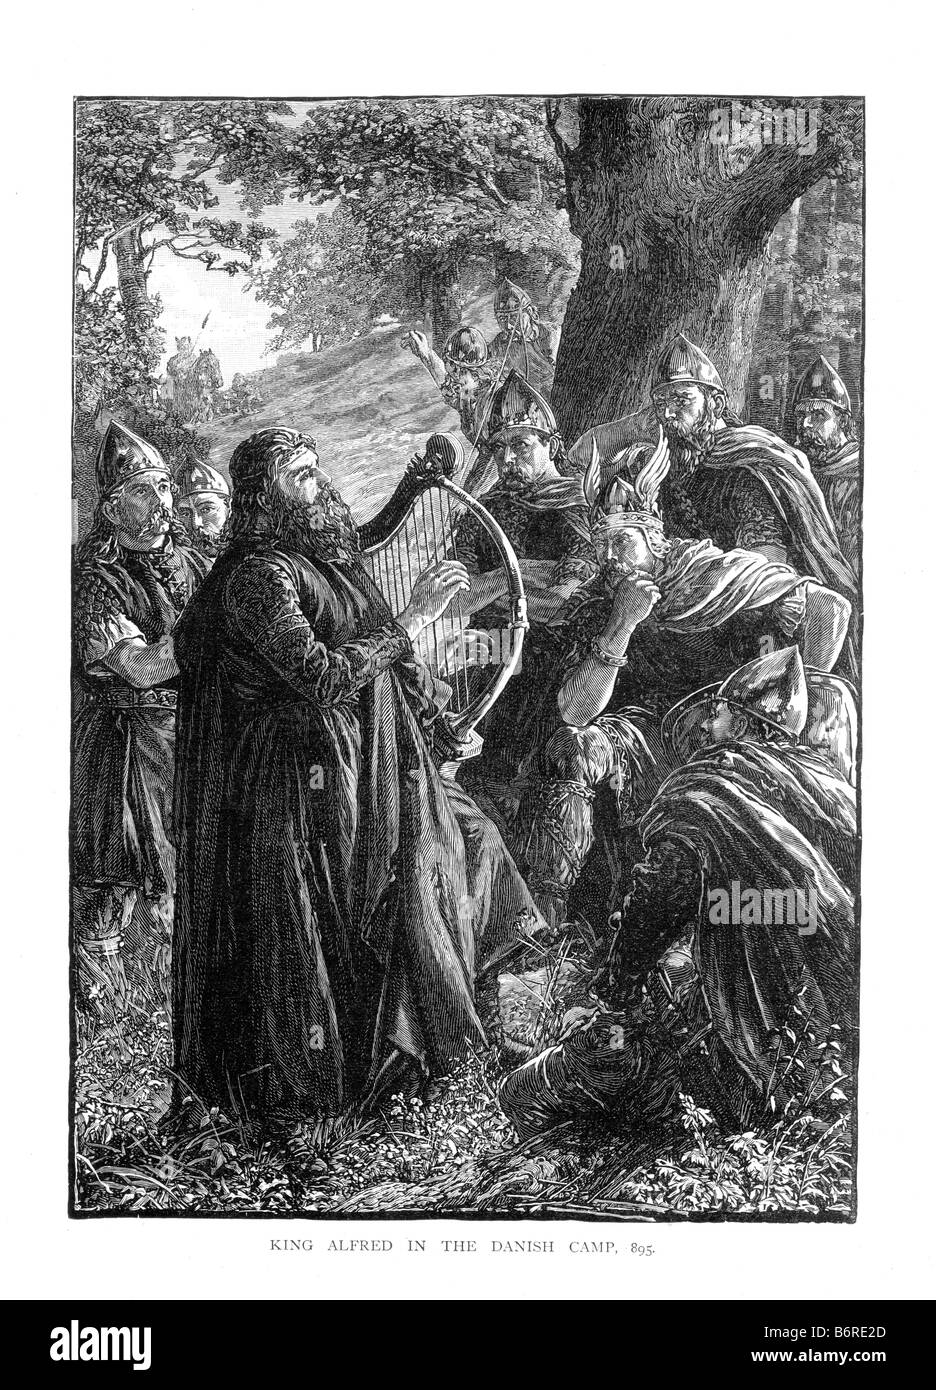 King Alfred in the Danish Camp AD 895 19th Century Illustration - Stock Image